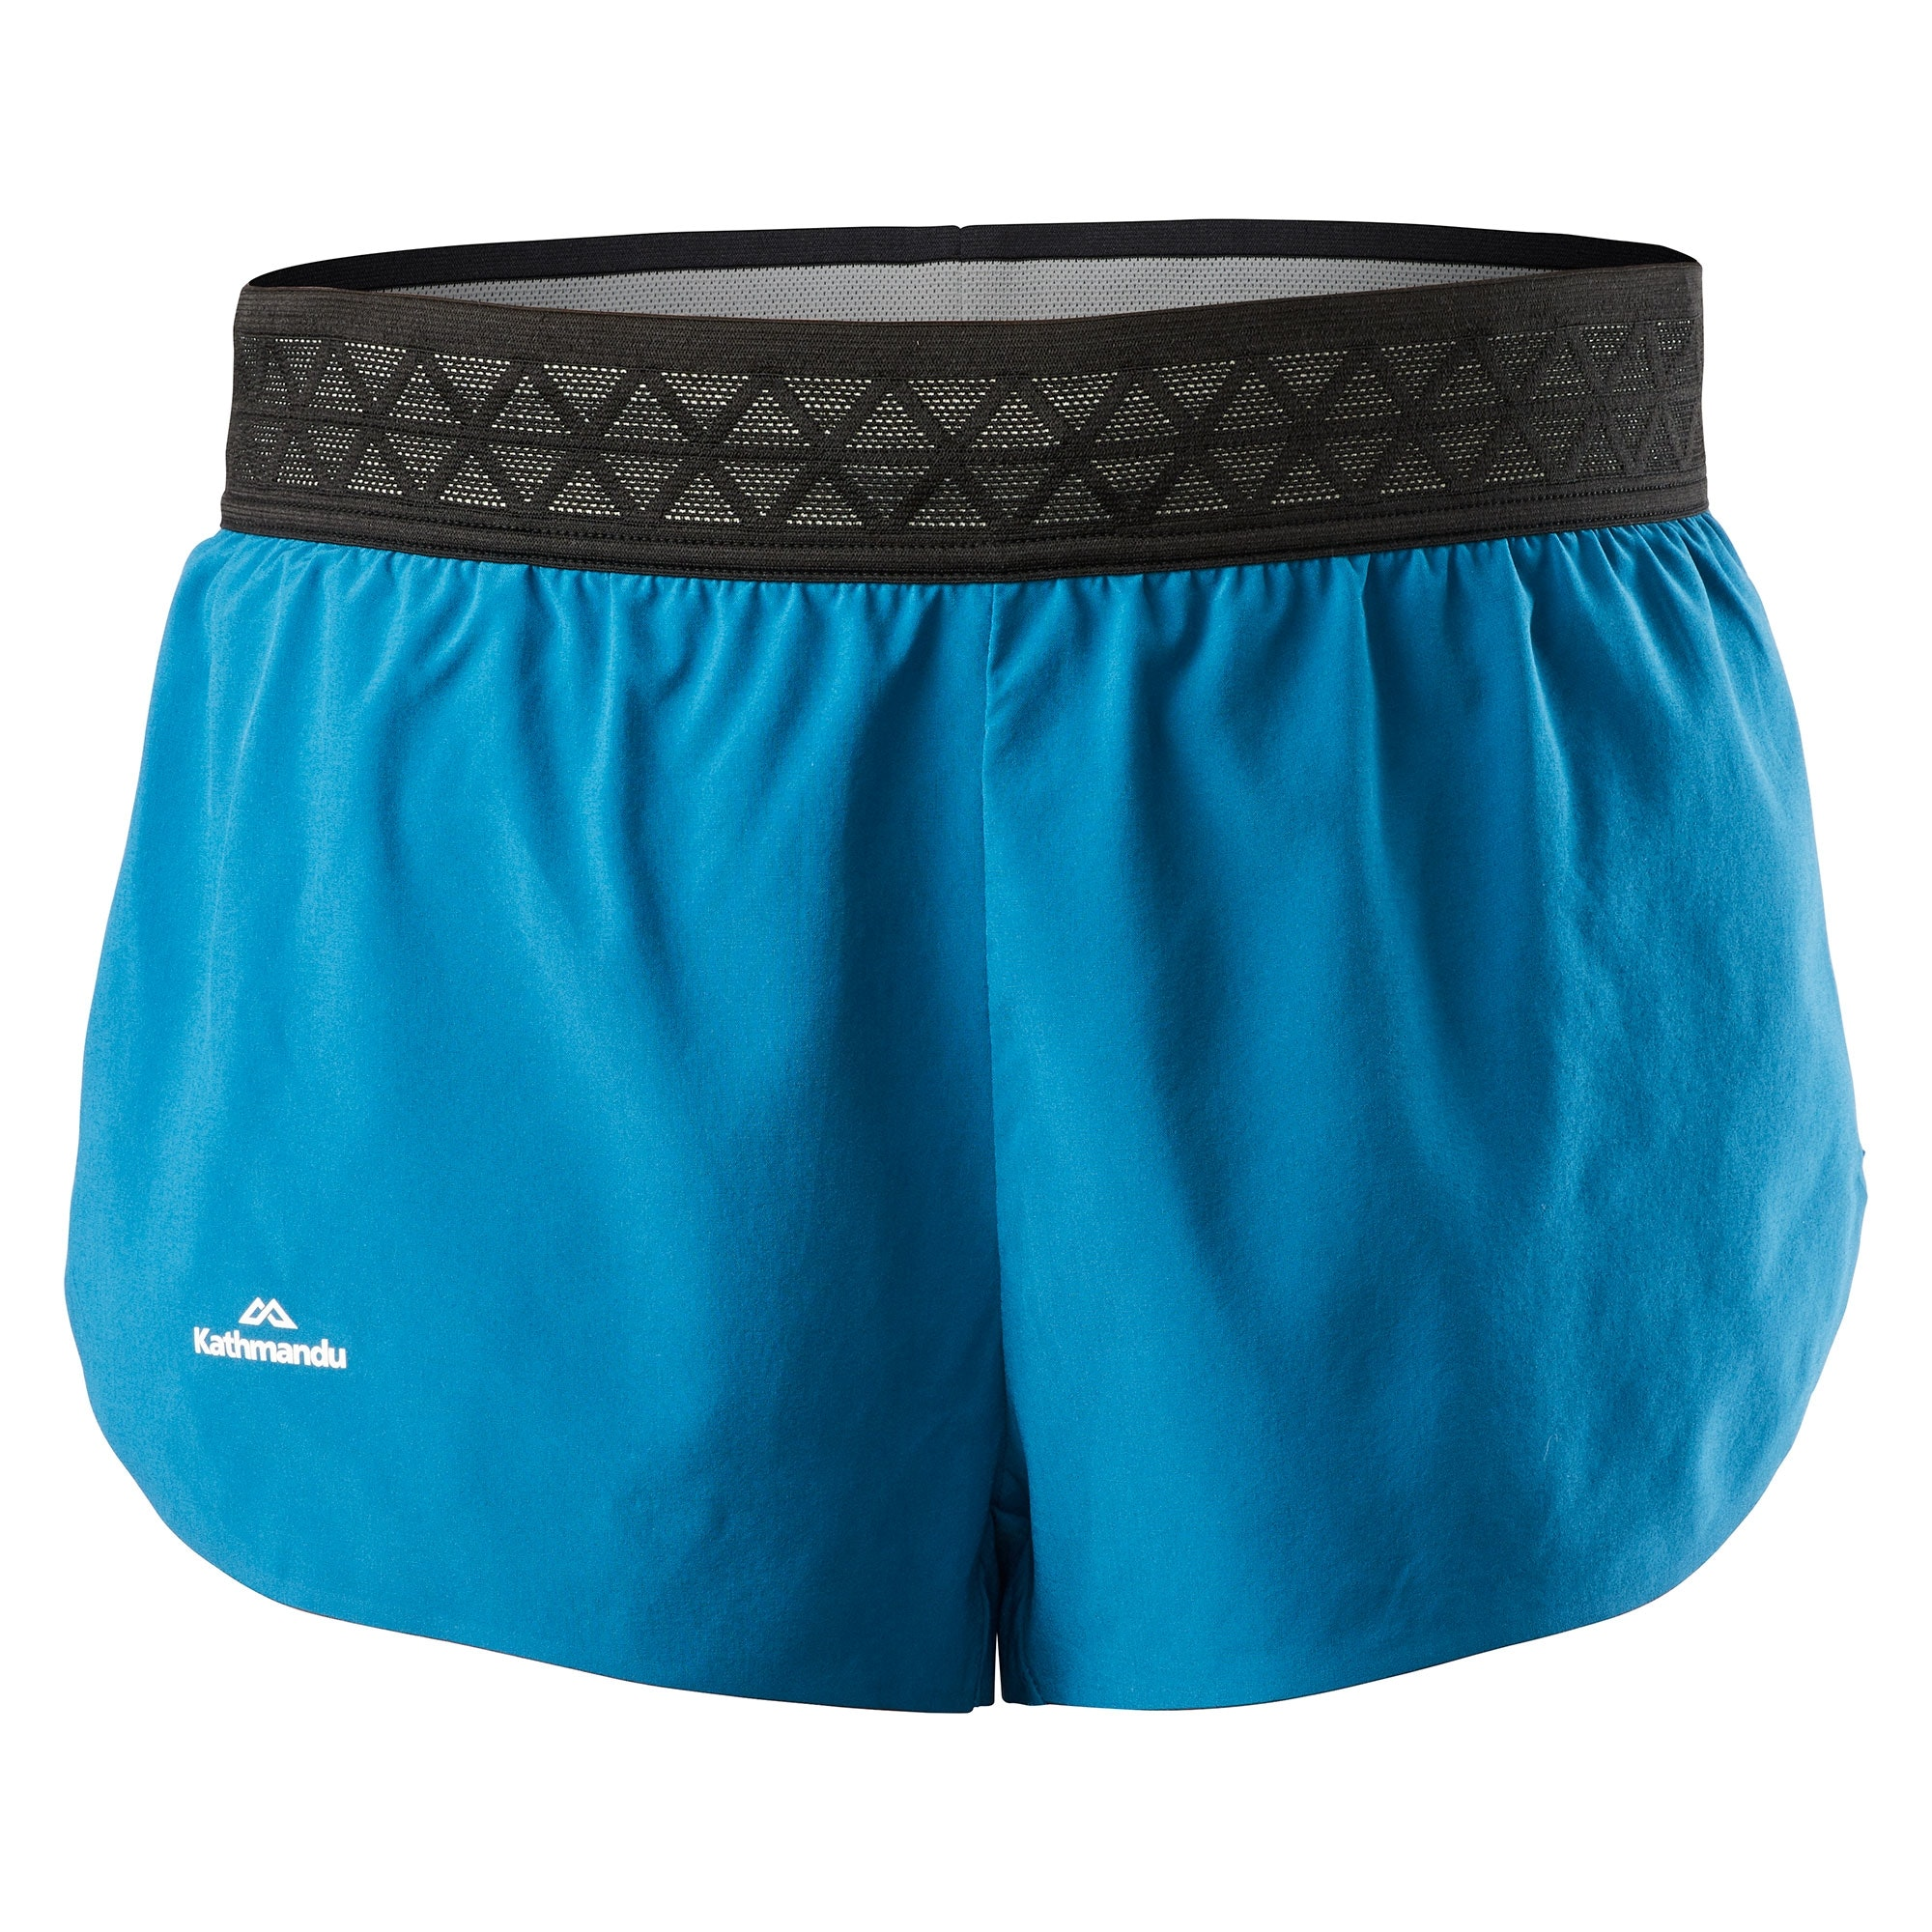 8349db168601 The ultimate workout shorts